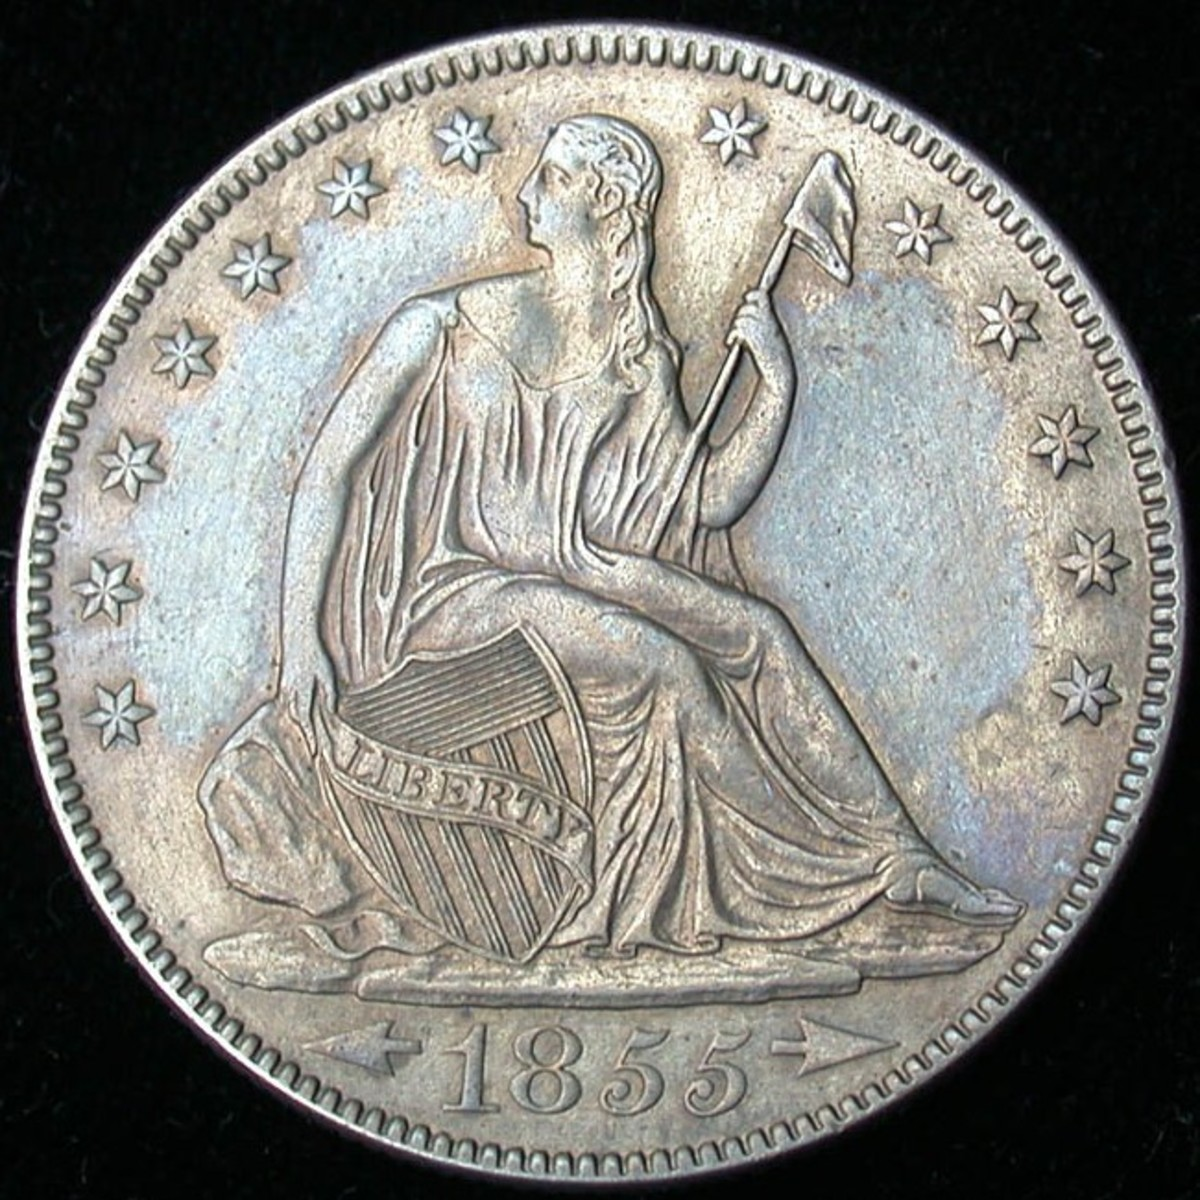 1855 O Seated Liberty Half Dollar Arrows at Date. Photo Courtesy: coinpage.com